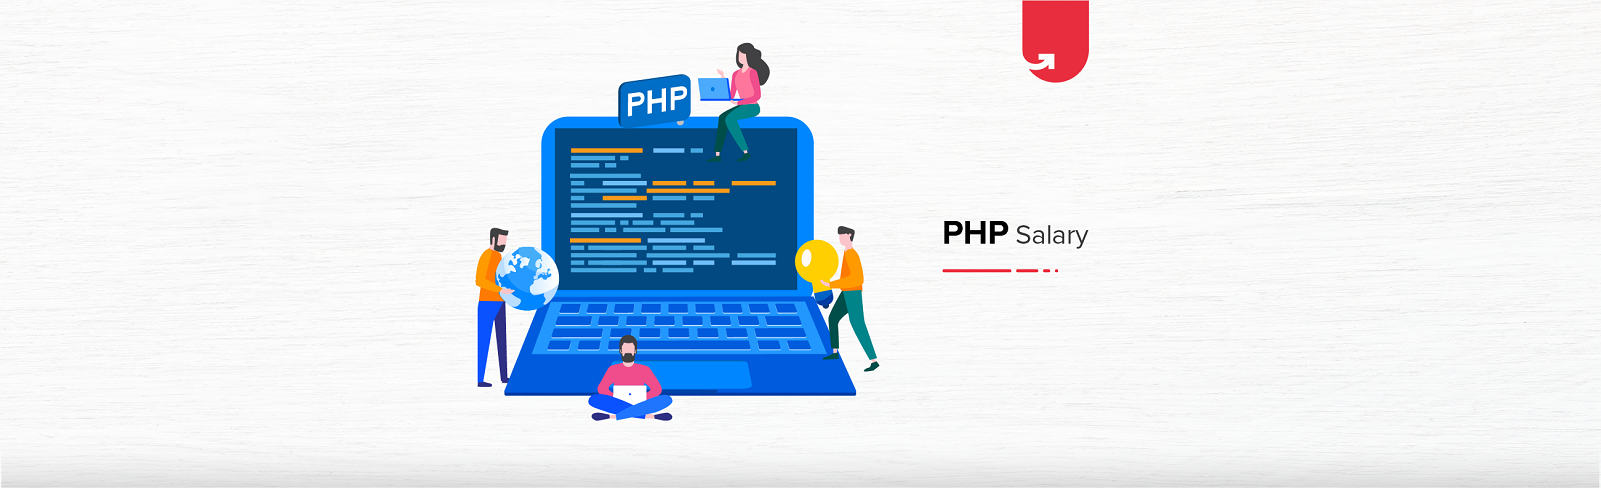 PHP Developer Salary in India in 2021 [For Freshers & Experienced]